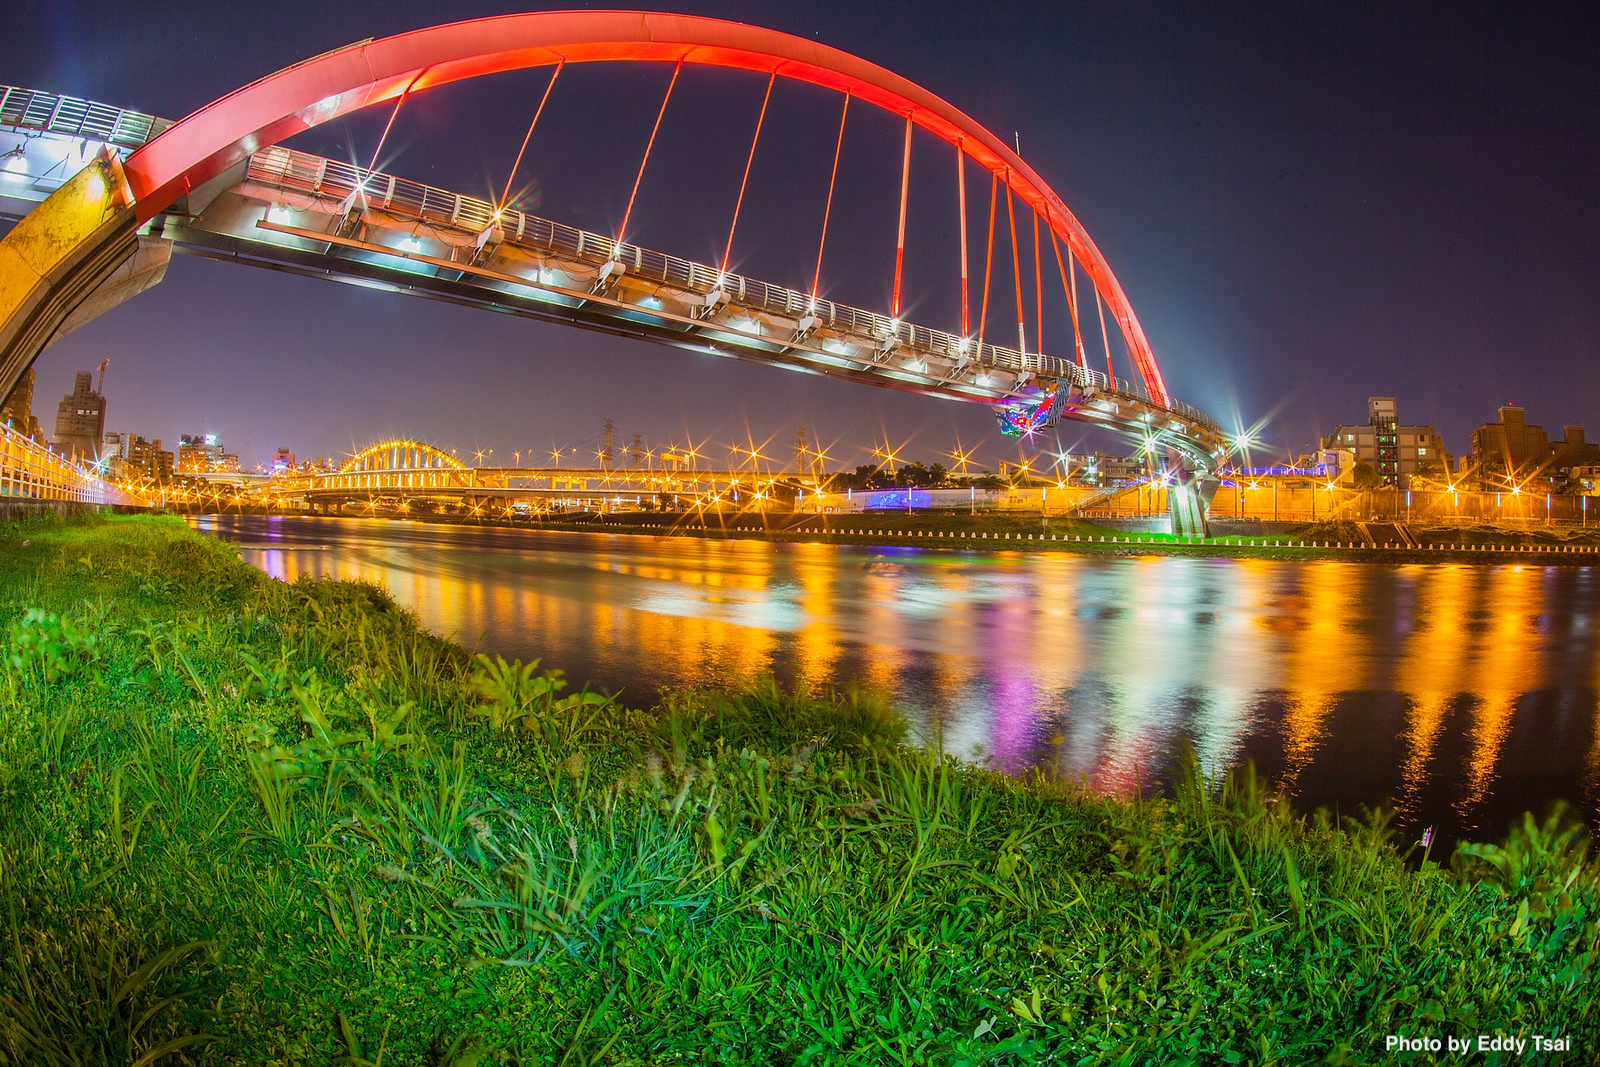 Rainbow Bridge at Keelung River in Taiwan